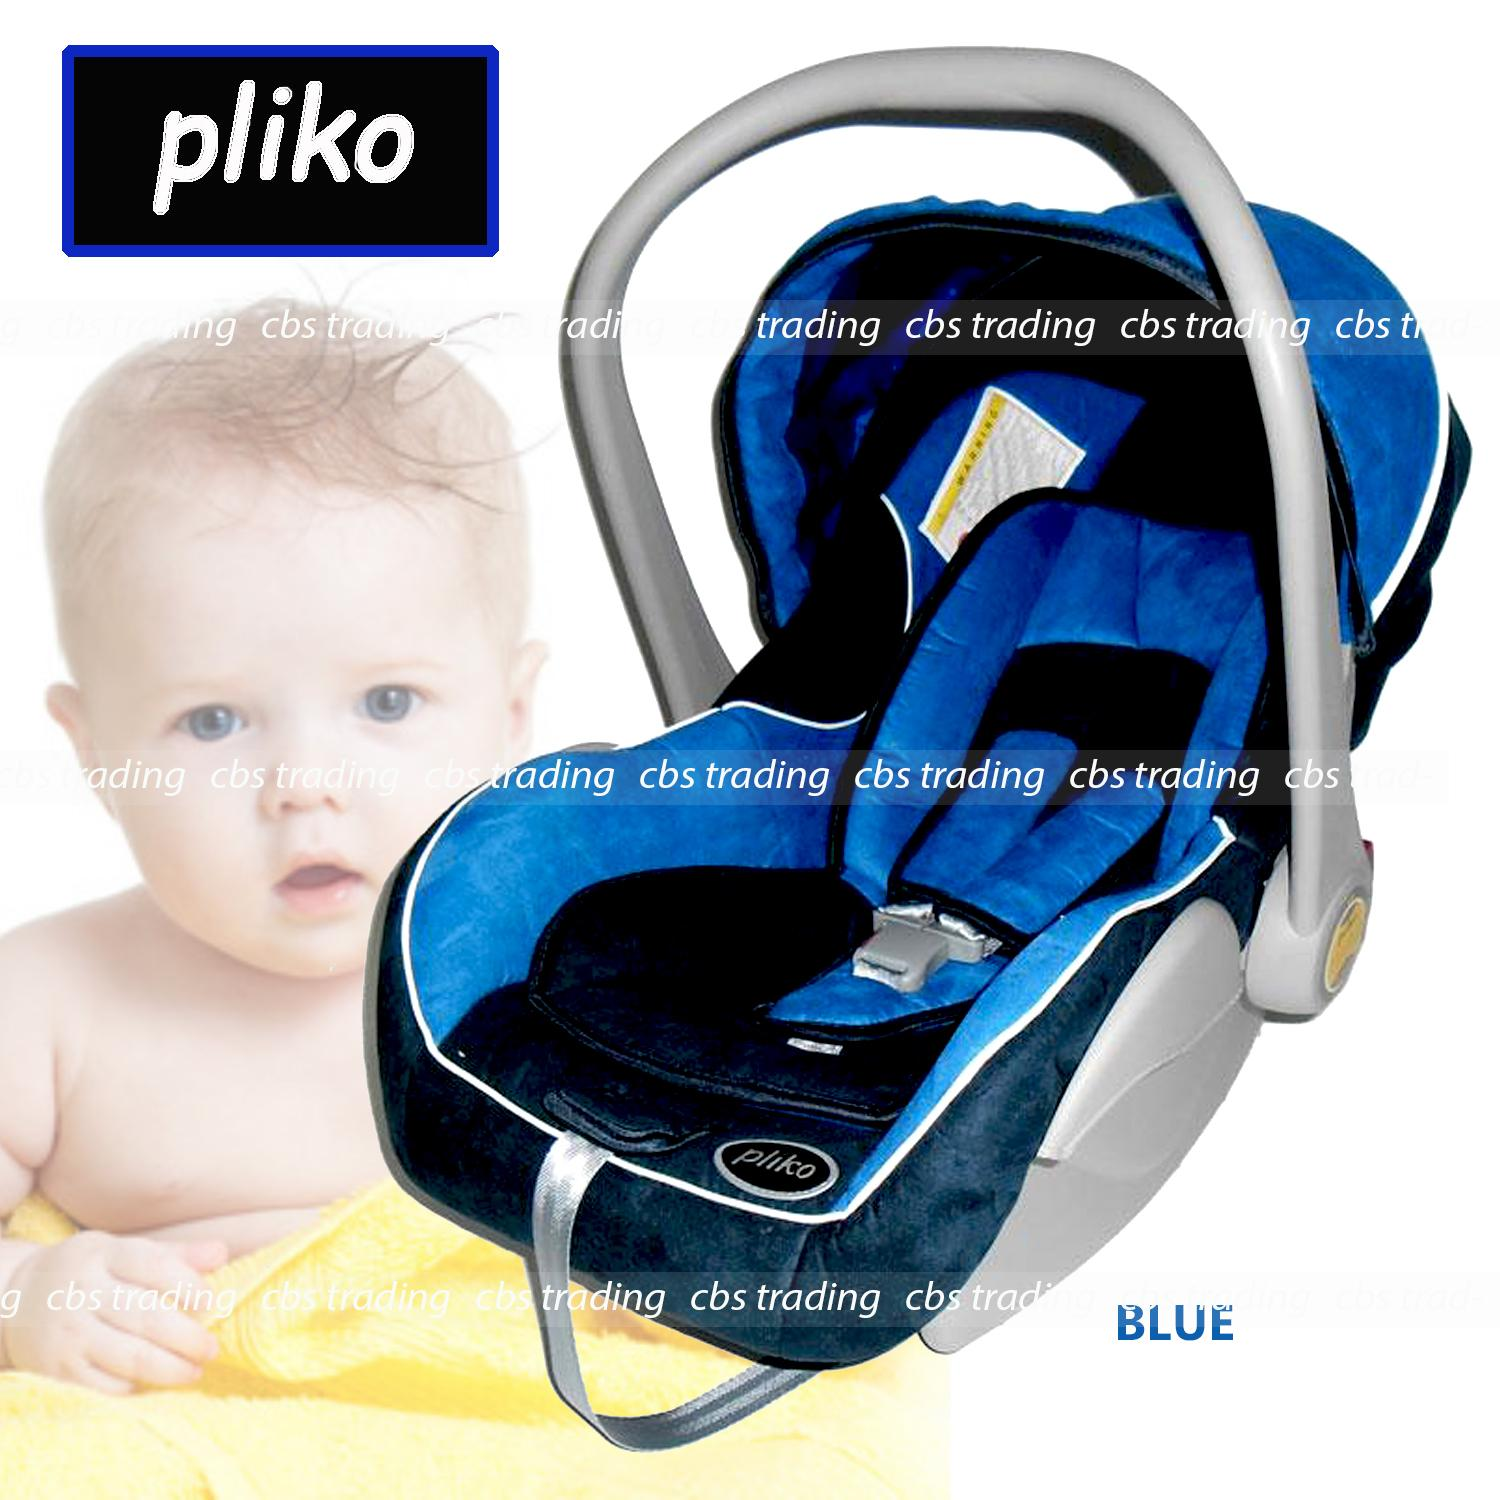 Beli Kursi Lipat Bayi Store Marwanto606 Source · Babyelle Fold Up Infant Seat With Melodies And